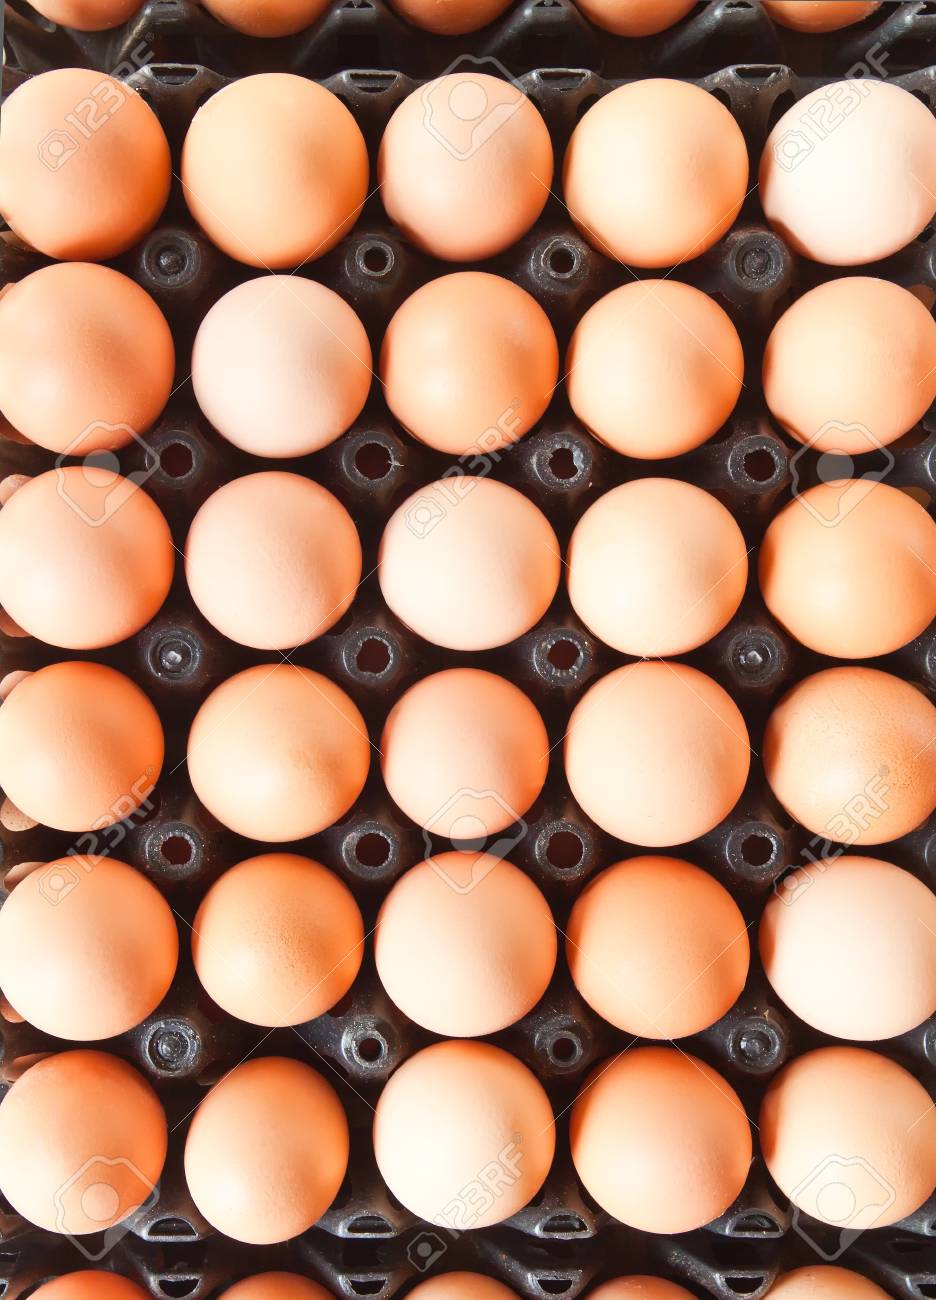 Many brown eggs in boxes. Stock Photo - 12686879